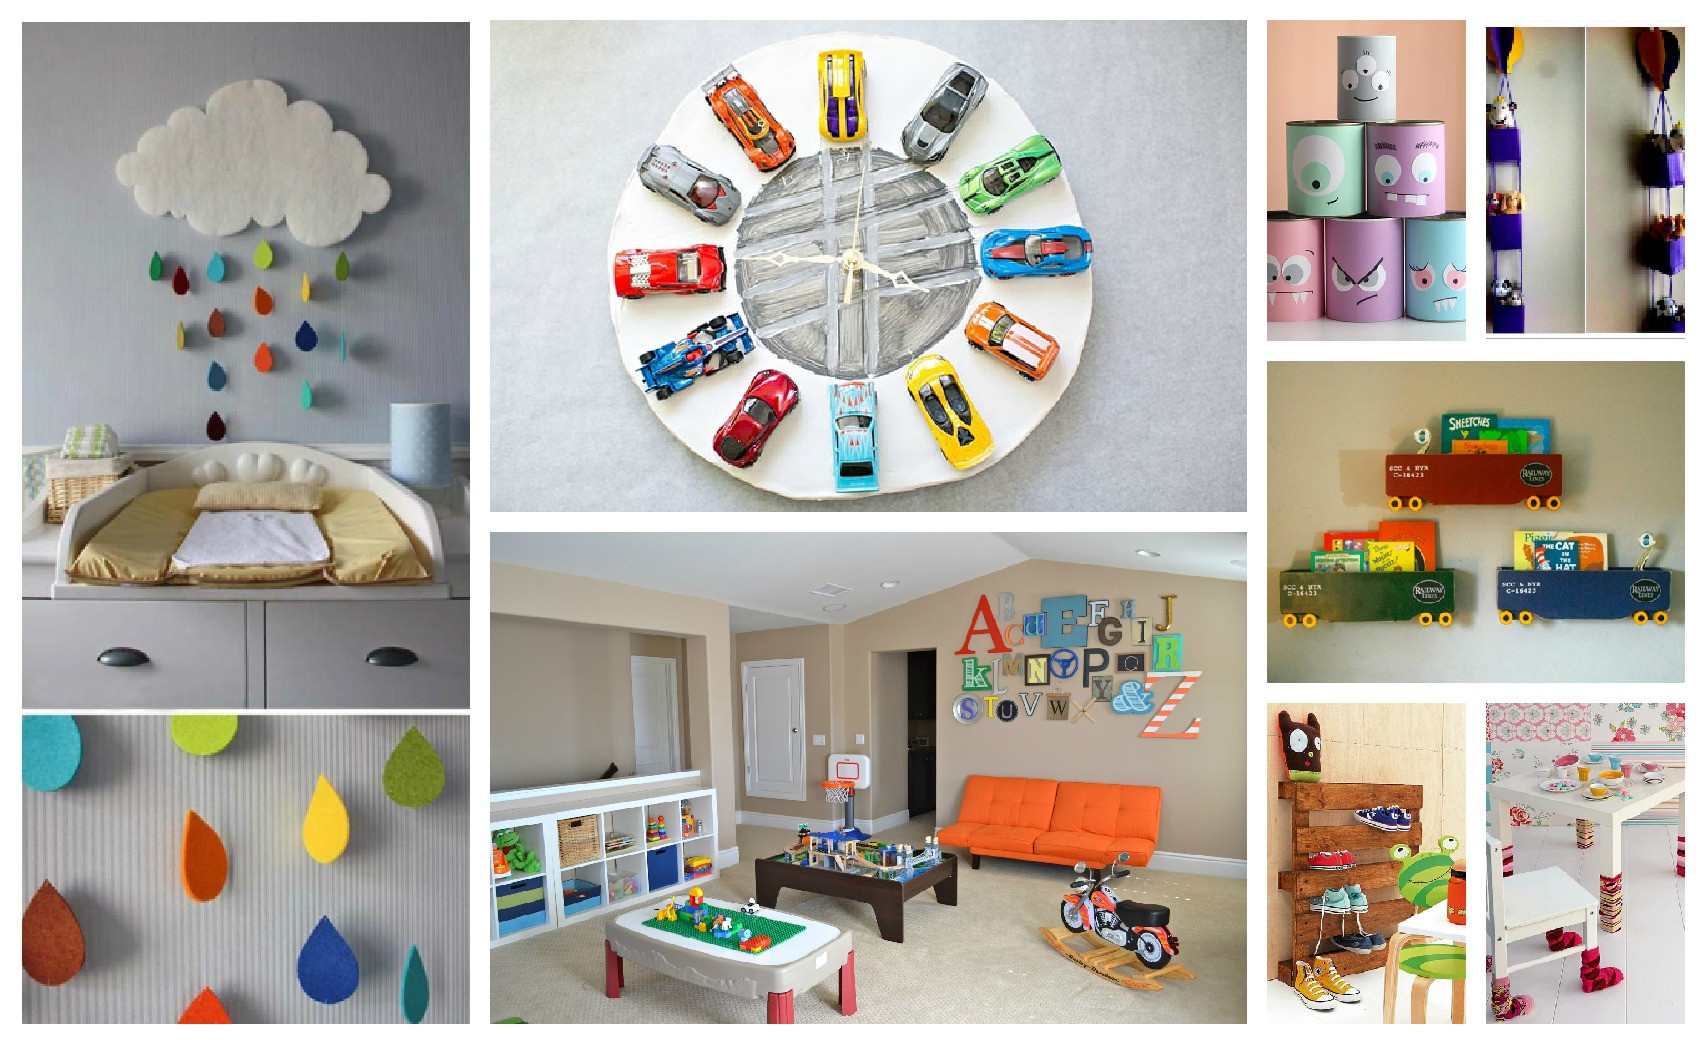 Best ideas about DIY Room Decorations For Kids . Save or Pin DIY kids room decor ideas Archives Now.